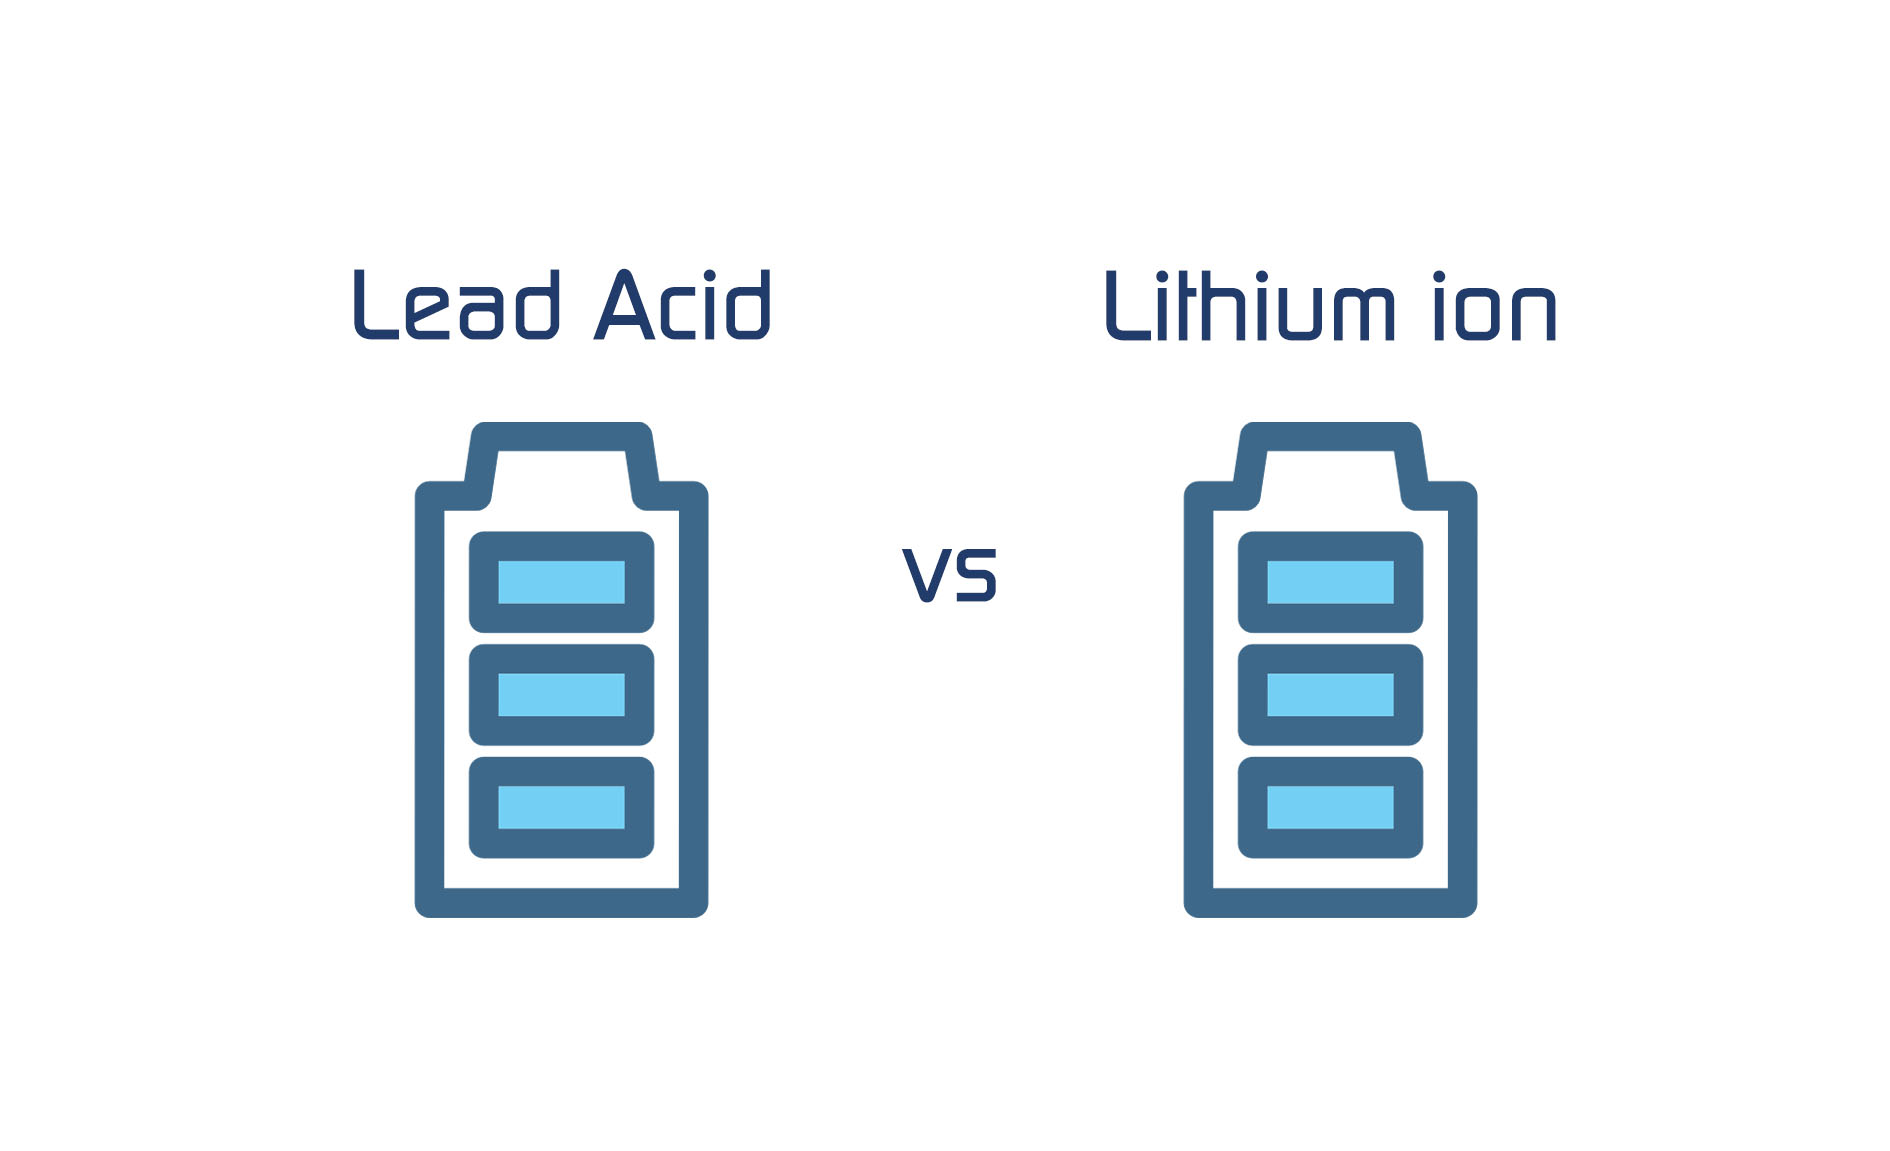 Lead Acid Batteries vs Lithium Batteries: Which Are Better for Solar Storage?